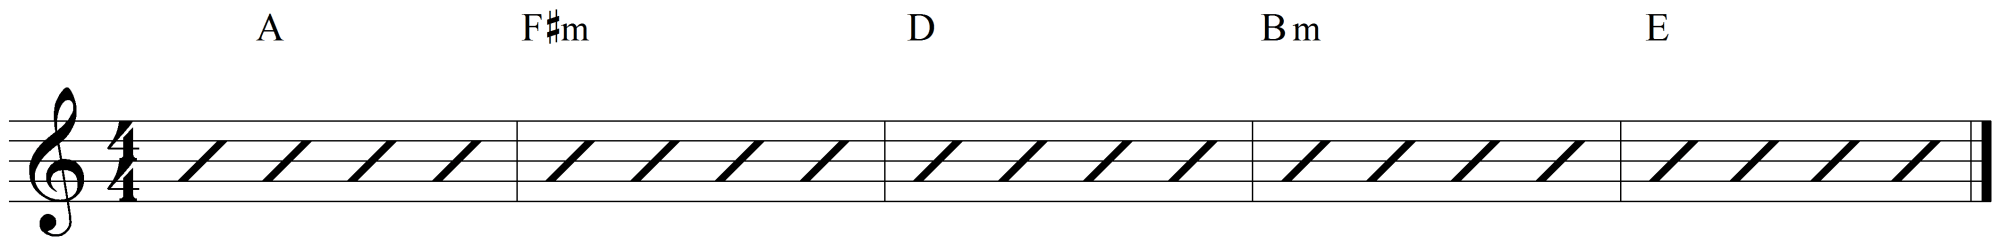 hight resolution of key of a chord pattern example